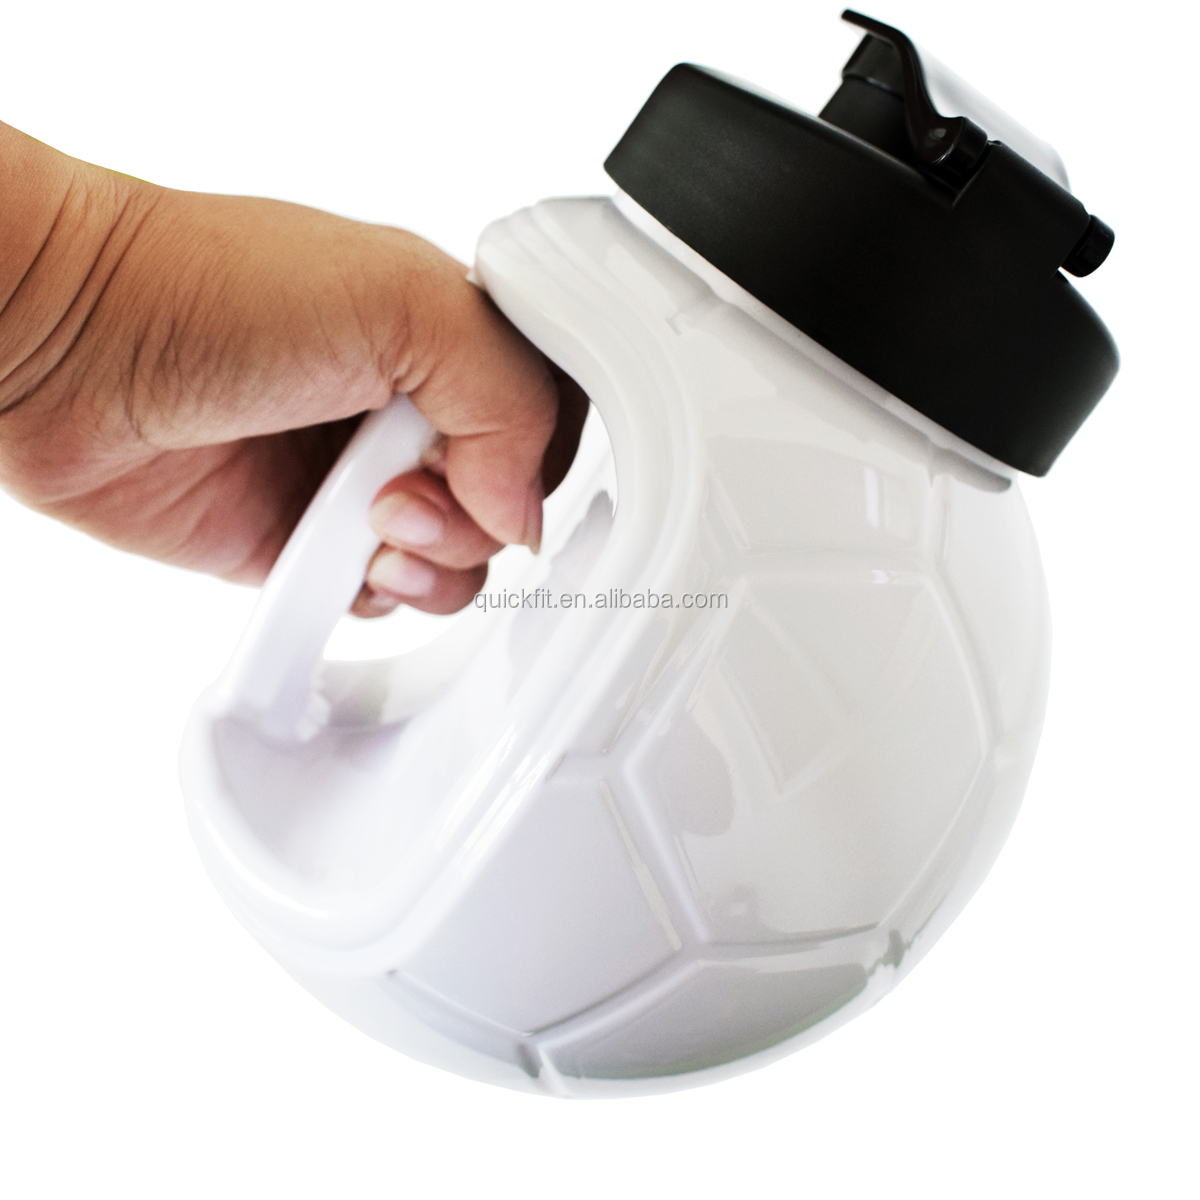 QuiFit World Cup Bottle 1.3L/45OZ Training Drinking Water Jug Hydrate Container Lightweight with Easy Carry Strap